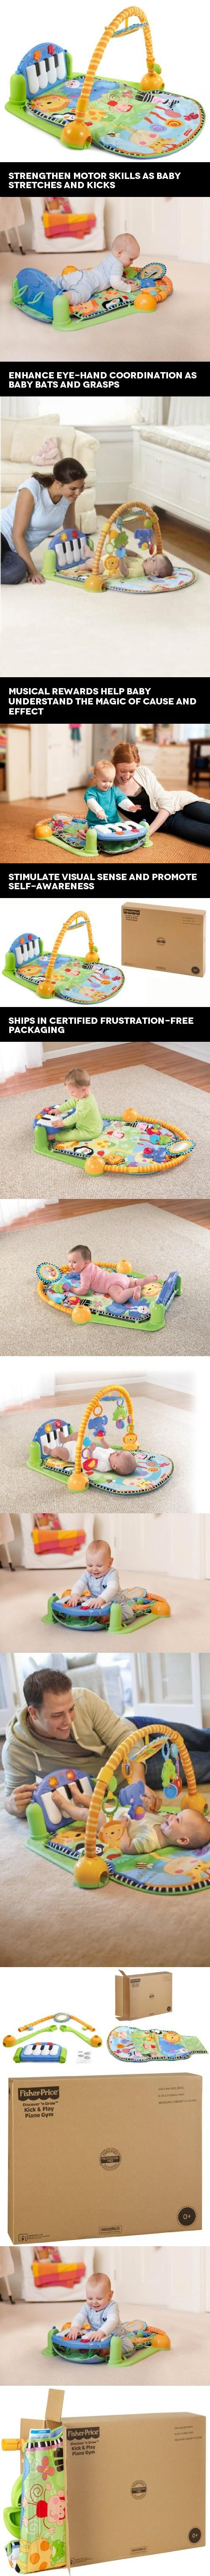 Fisher-Price Kick and Play Piano Gym, Discover 'N Grow, Baby kicks. Music plays. Lights sparkle. And that's just the beginning. Movable toys on the overhead gym encourage baby to bat and grasp. Move the arch down for tummy-time play, or let baby sit and ..., #Baby, #Baby Gyms & Playmats